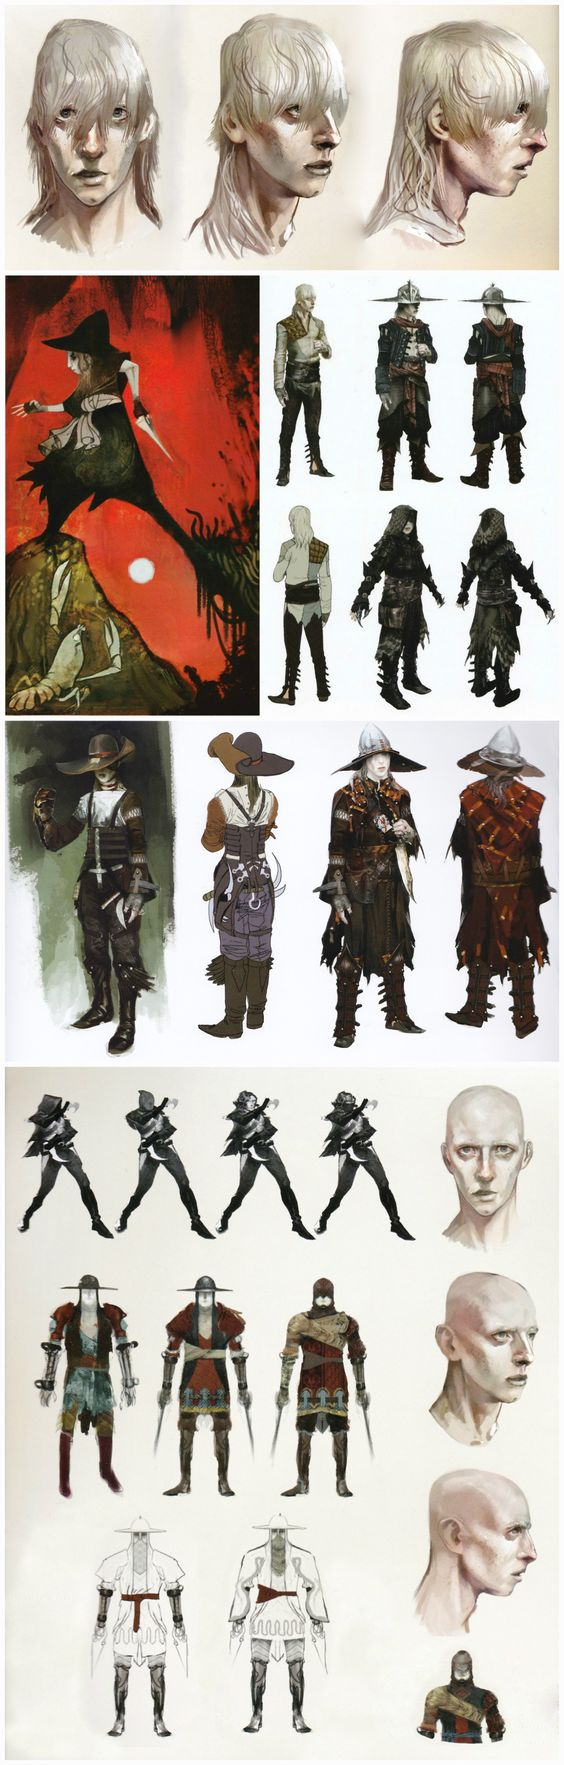 Dragon Age Inquisition Character Design Ideas : Cole concept art in the of dragon age inquisition